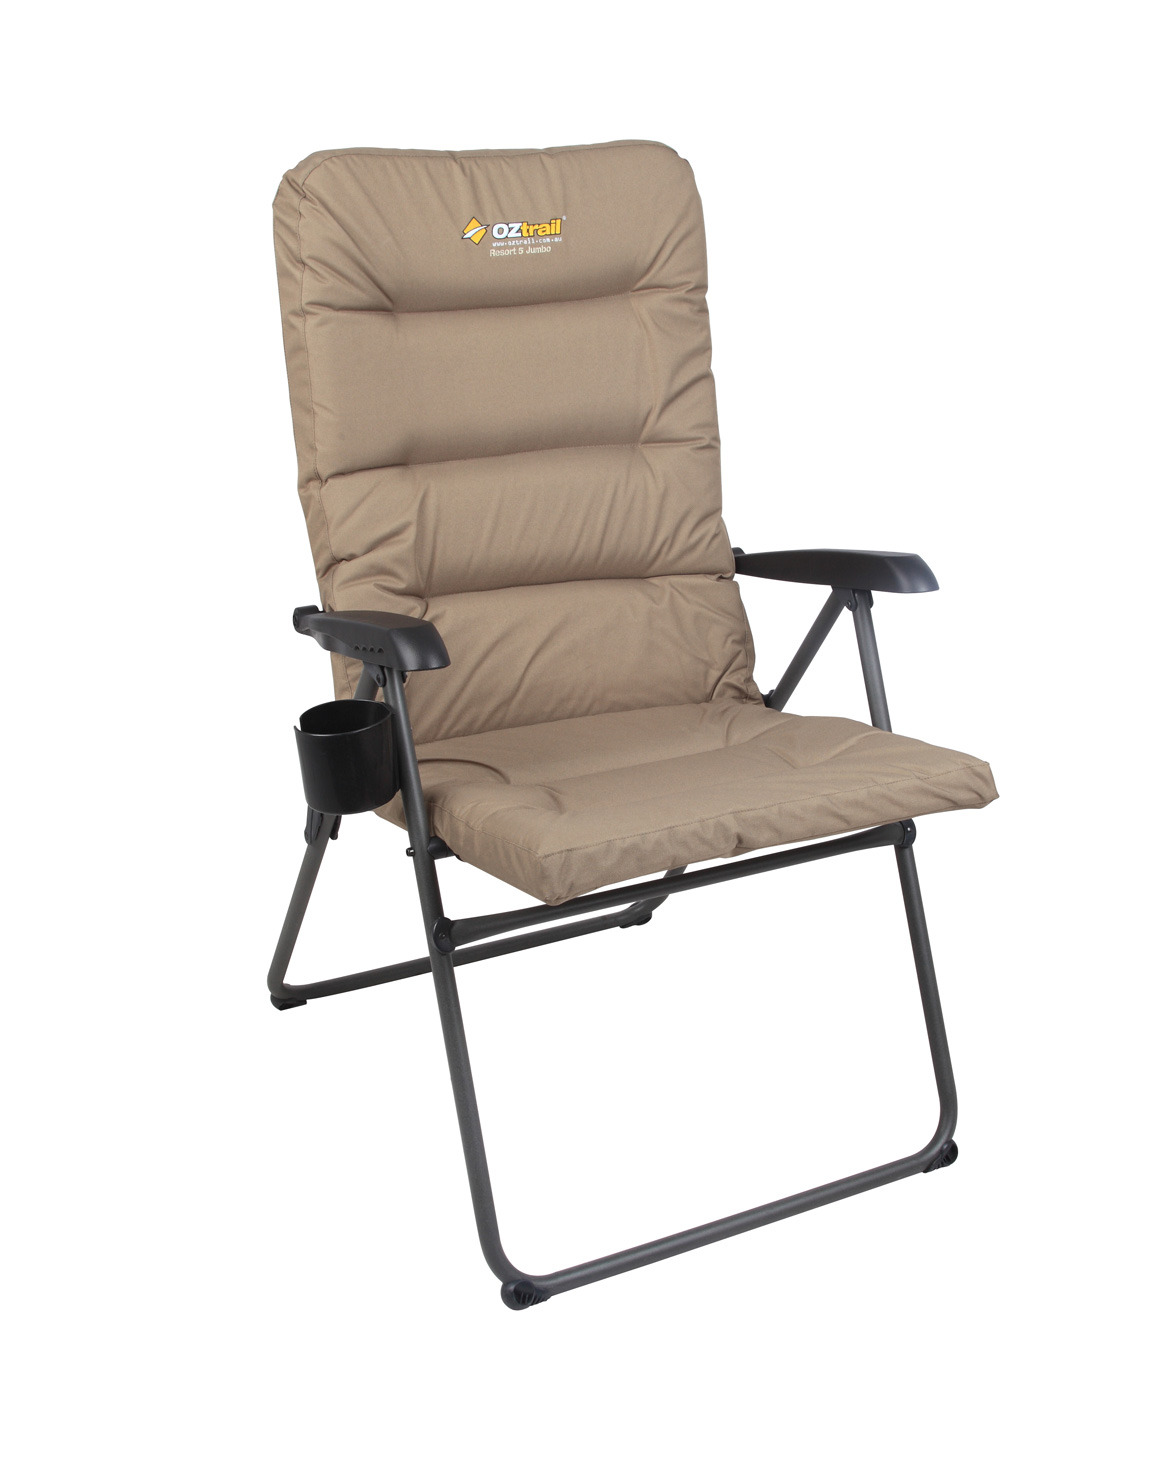 oztrail-coolum-5-position-padded-arm-chair--code-fca-coo5-e